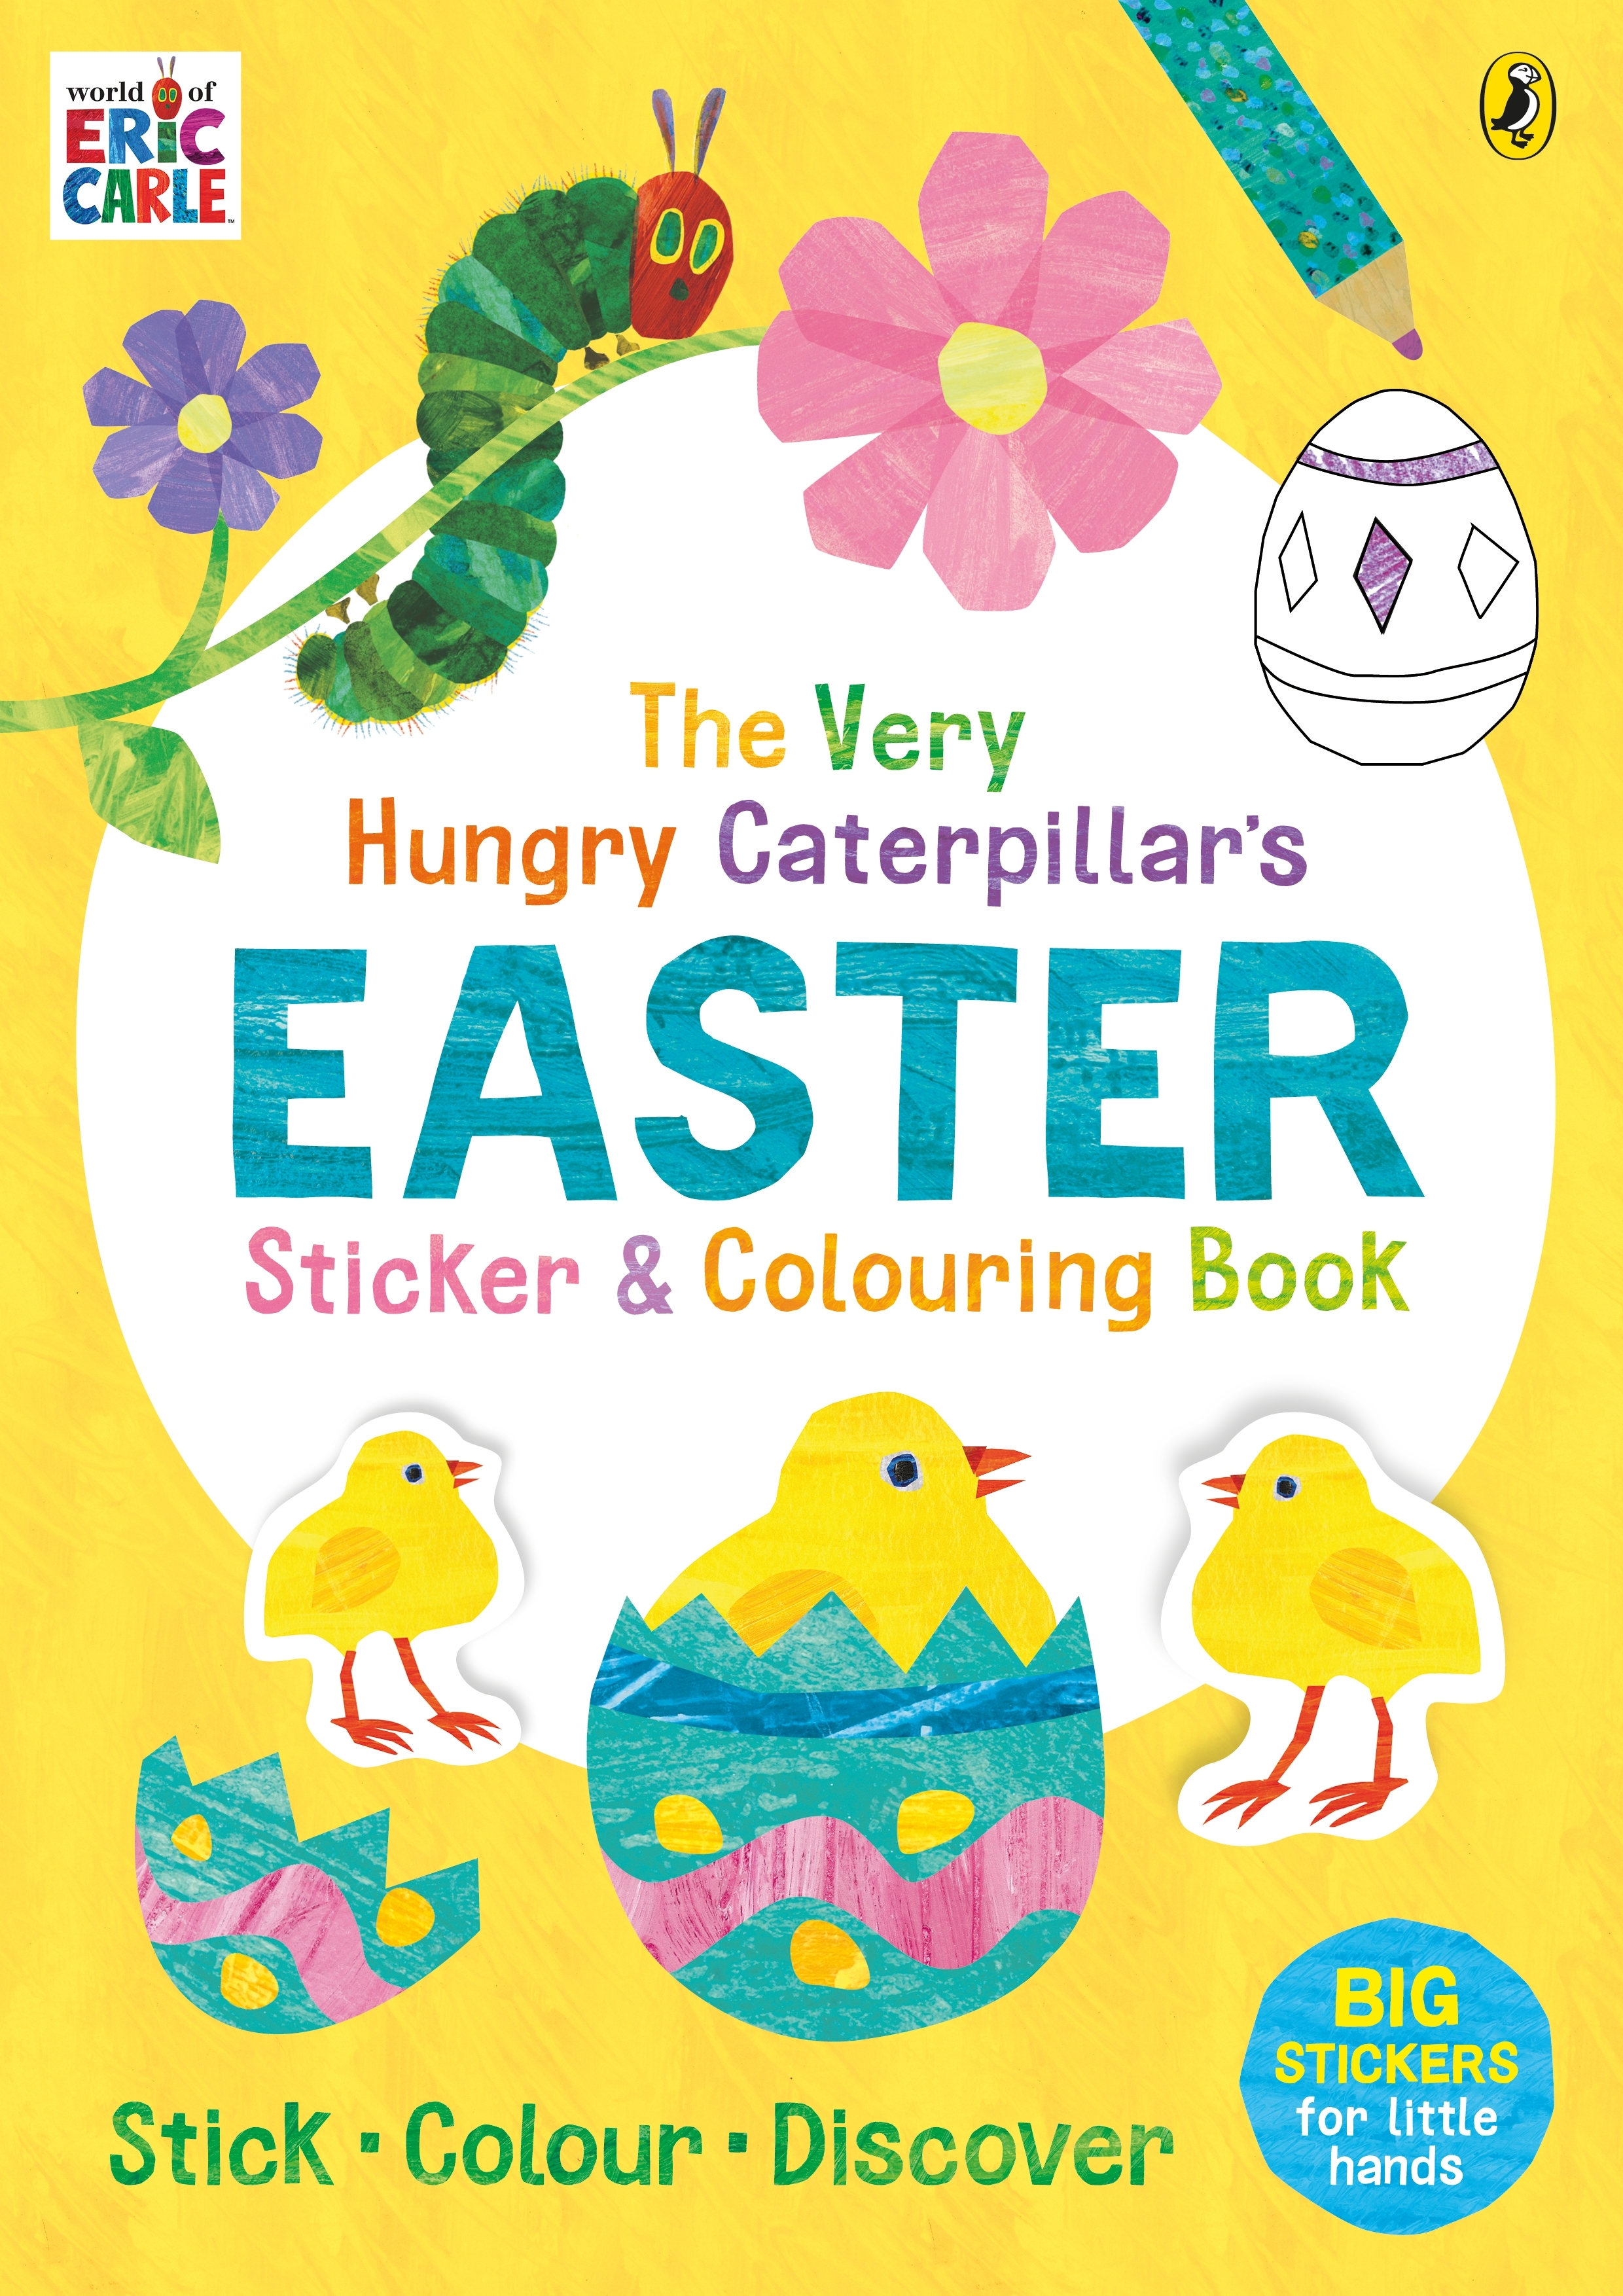 - The Very Hungry Caterpillar's Easter Sticker And Colouring Book By